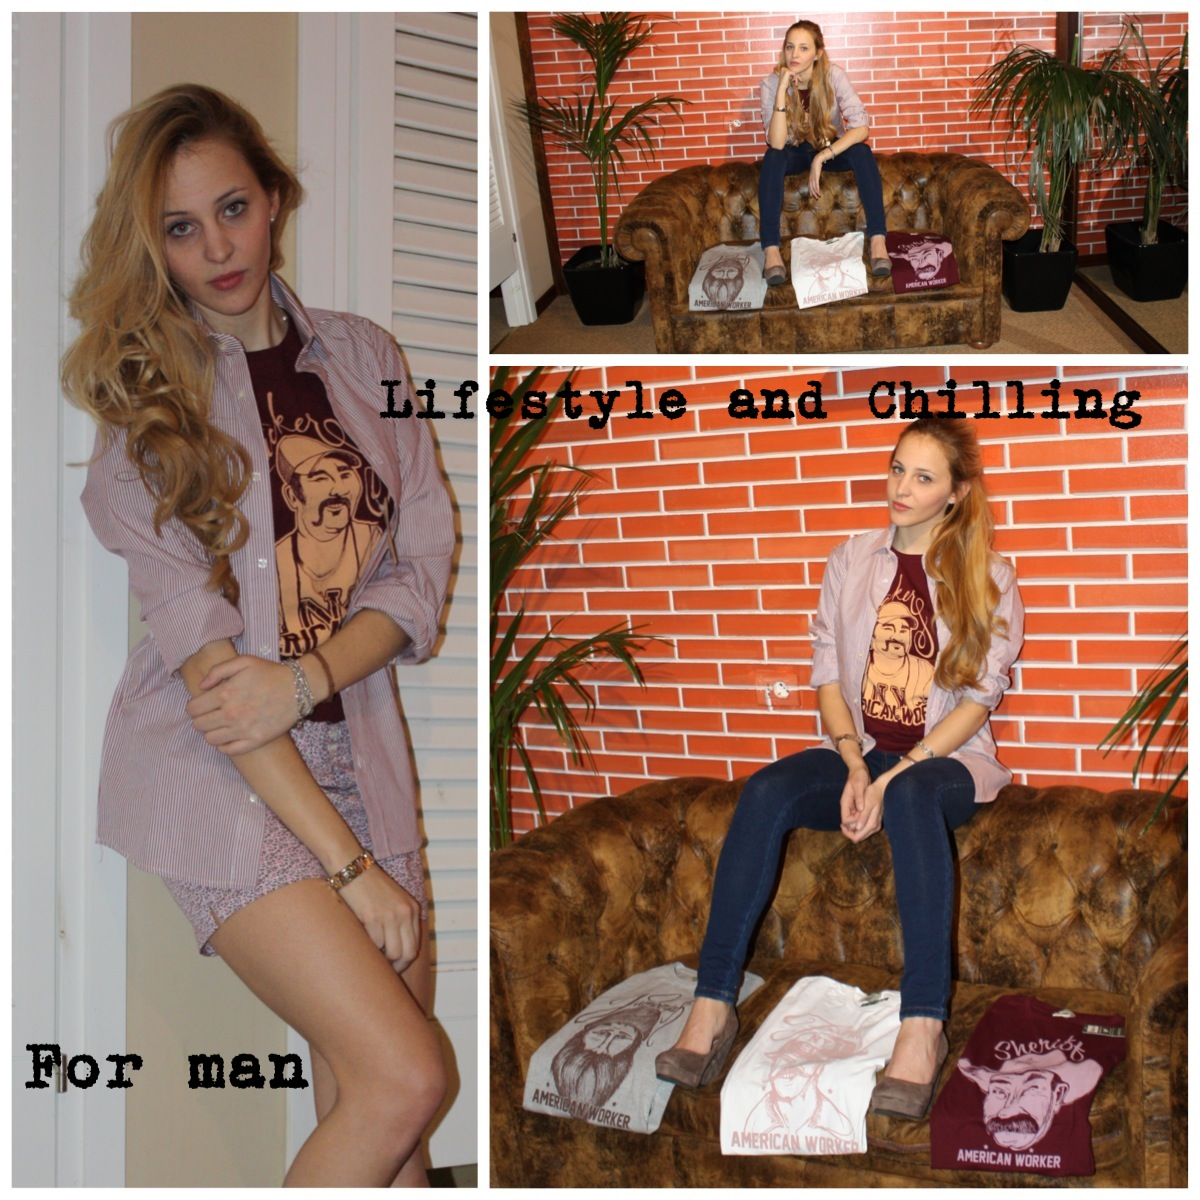 lifestyleandchilling for Collegestore Manhattan